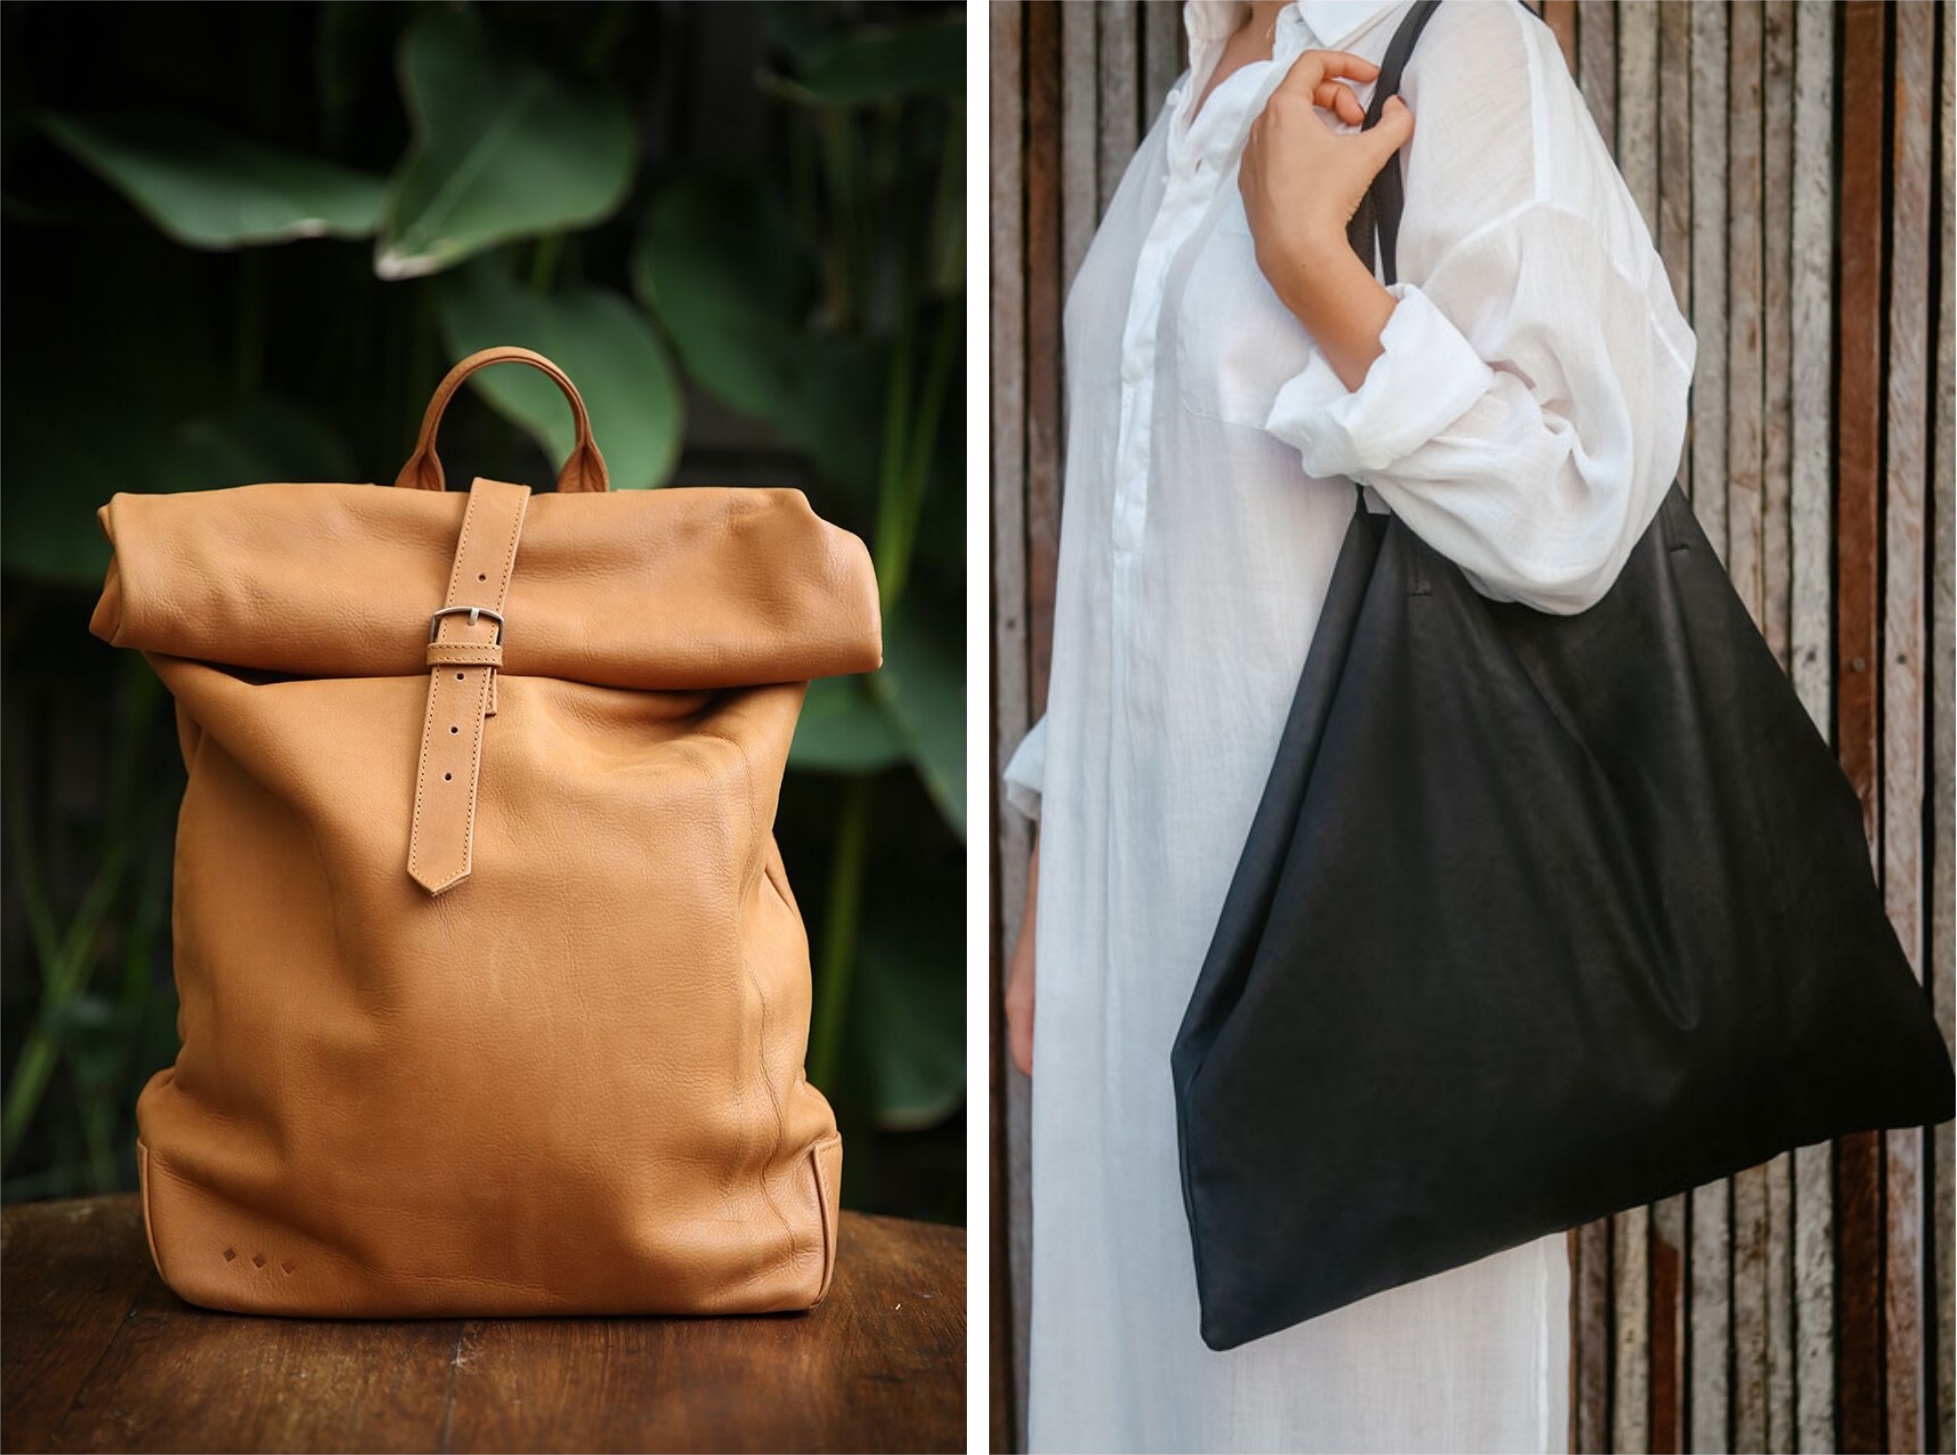 imke disselhoff ethical leather bag